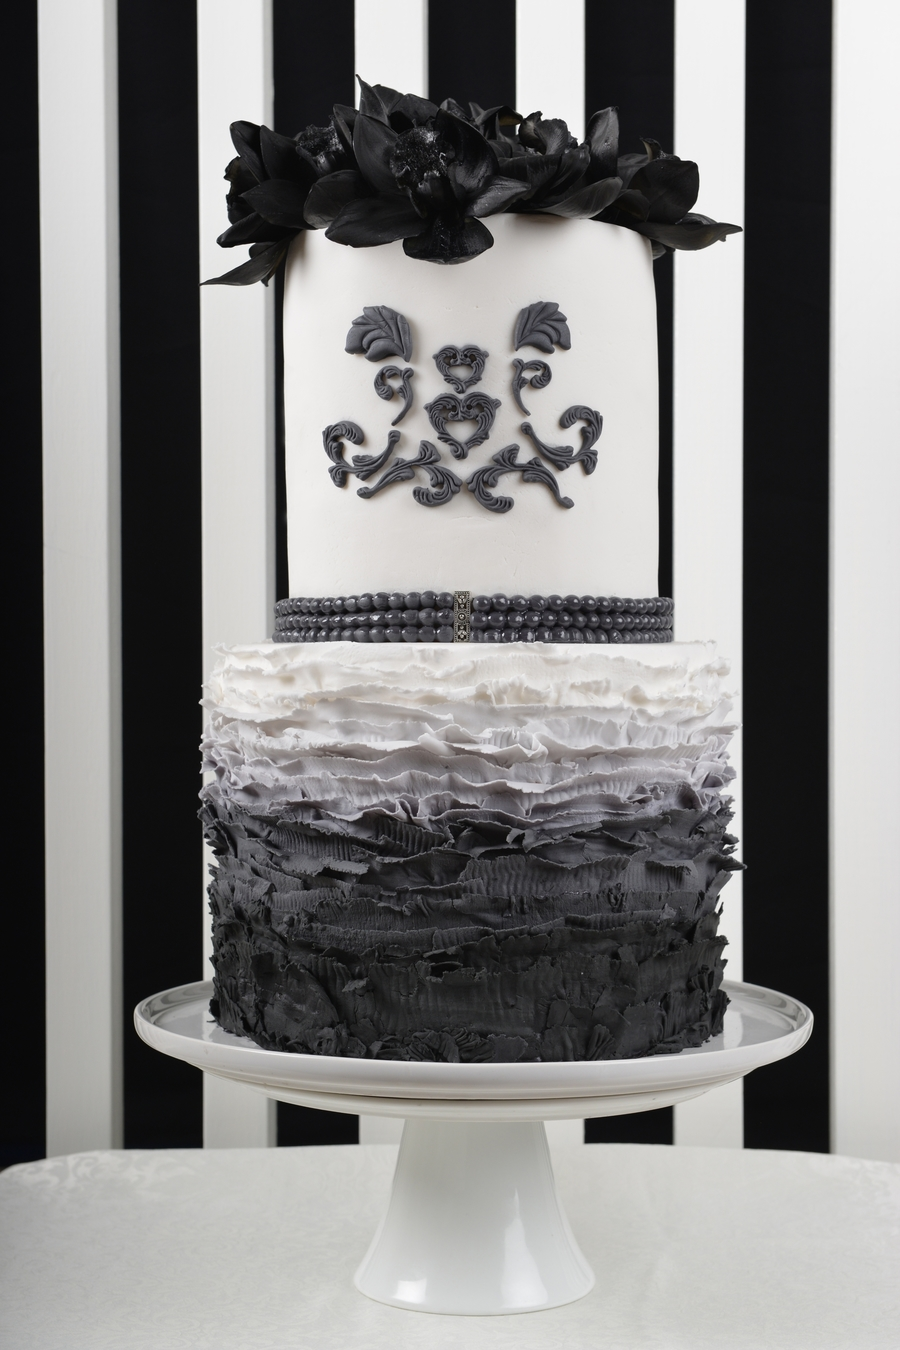 Black & White Ombre Fashion Inspired Cake - Featured In Cake Central Magazine on Cake Central